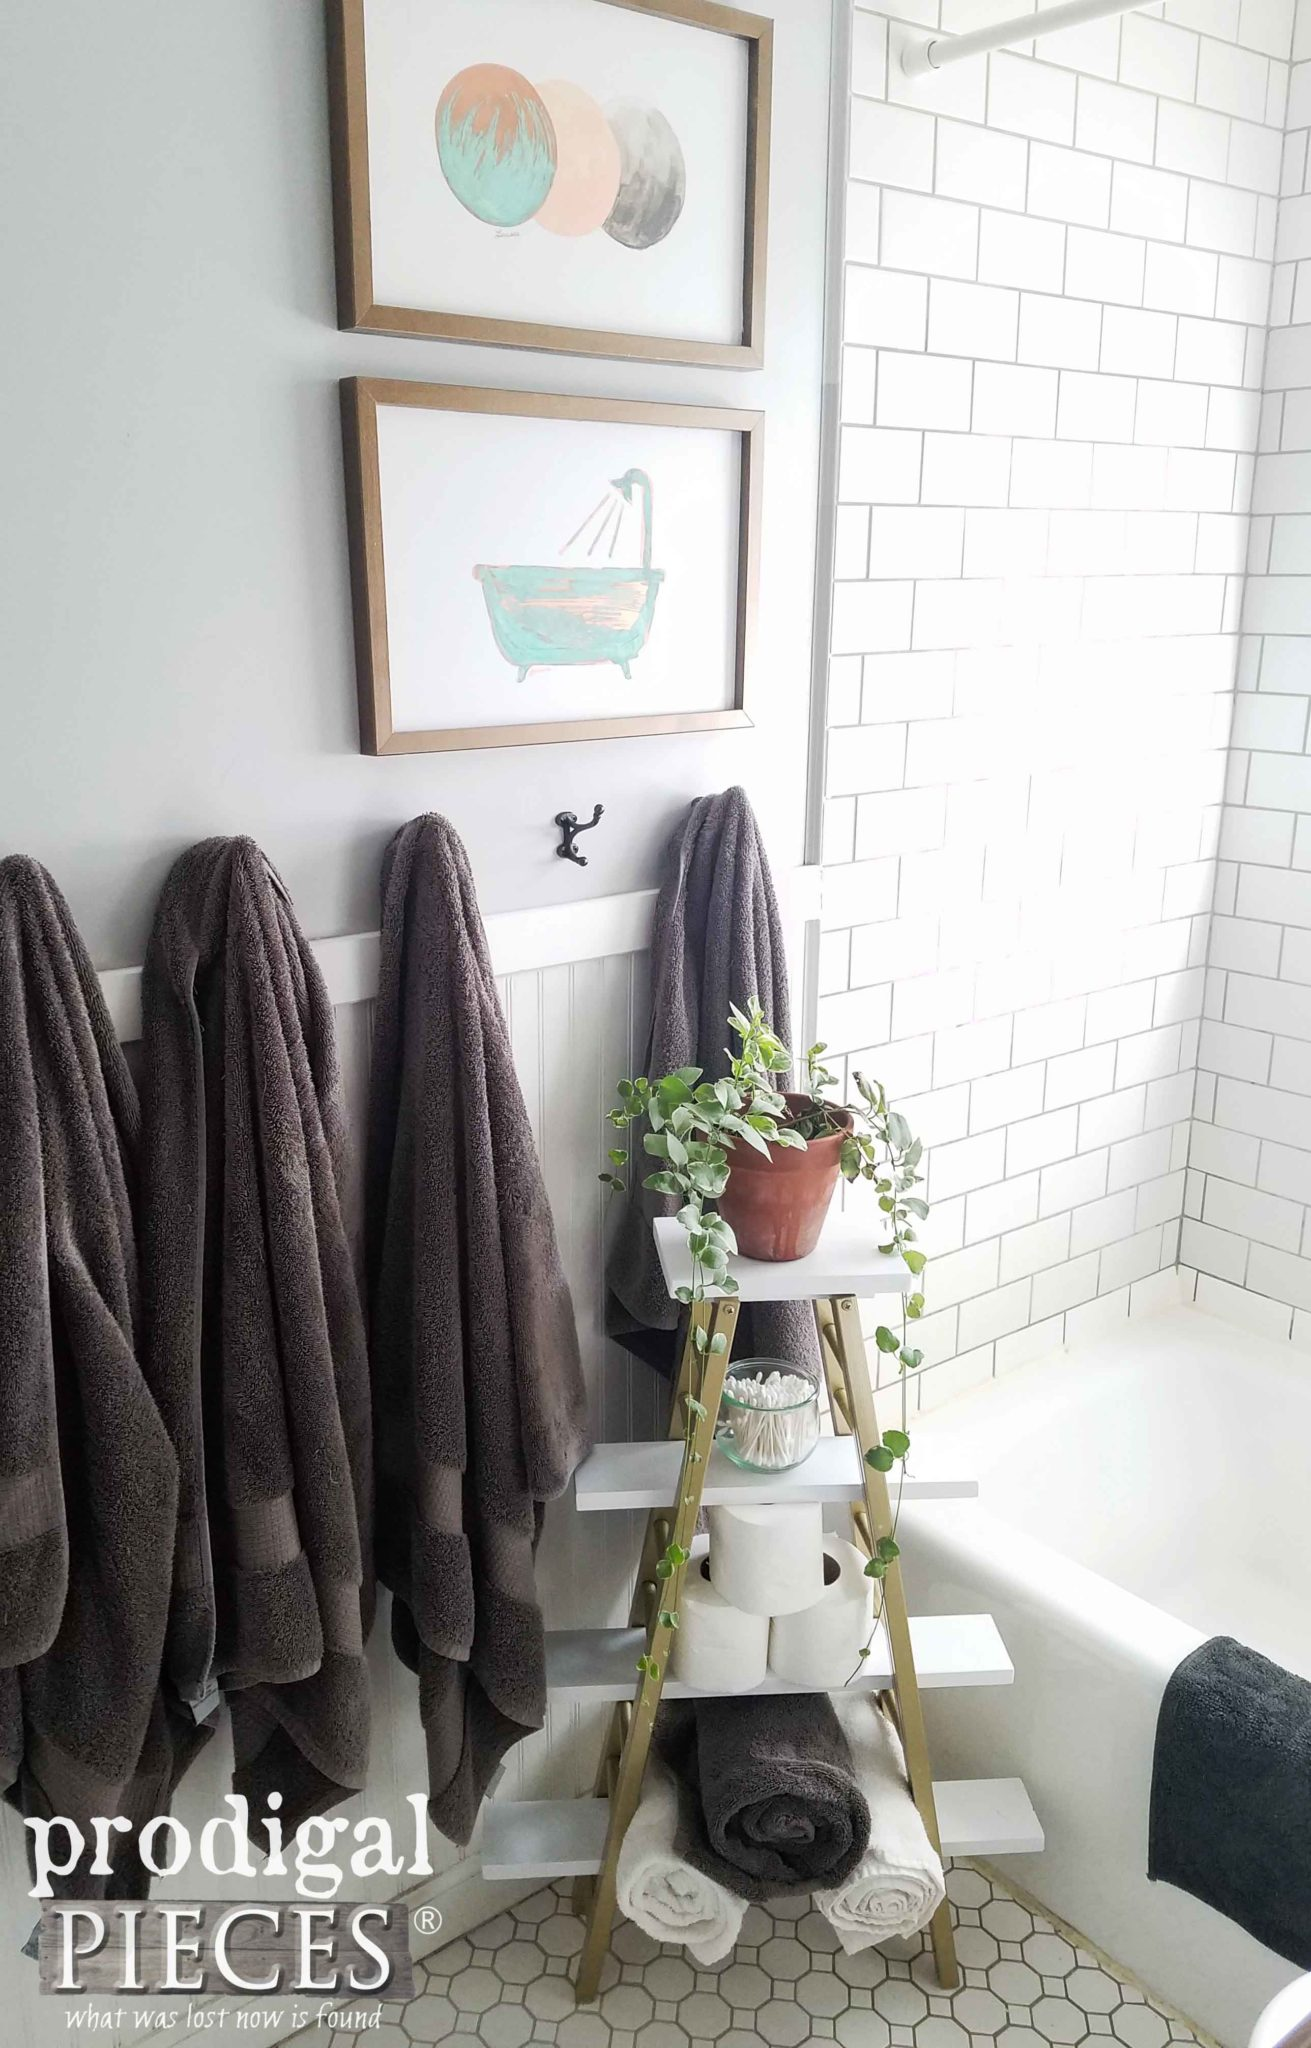 Modern Chic Bathroom with Upcycled Storage and DIY Wall Art by Prodigal Pieces | prodigalpieces.com